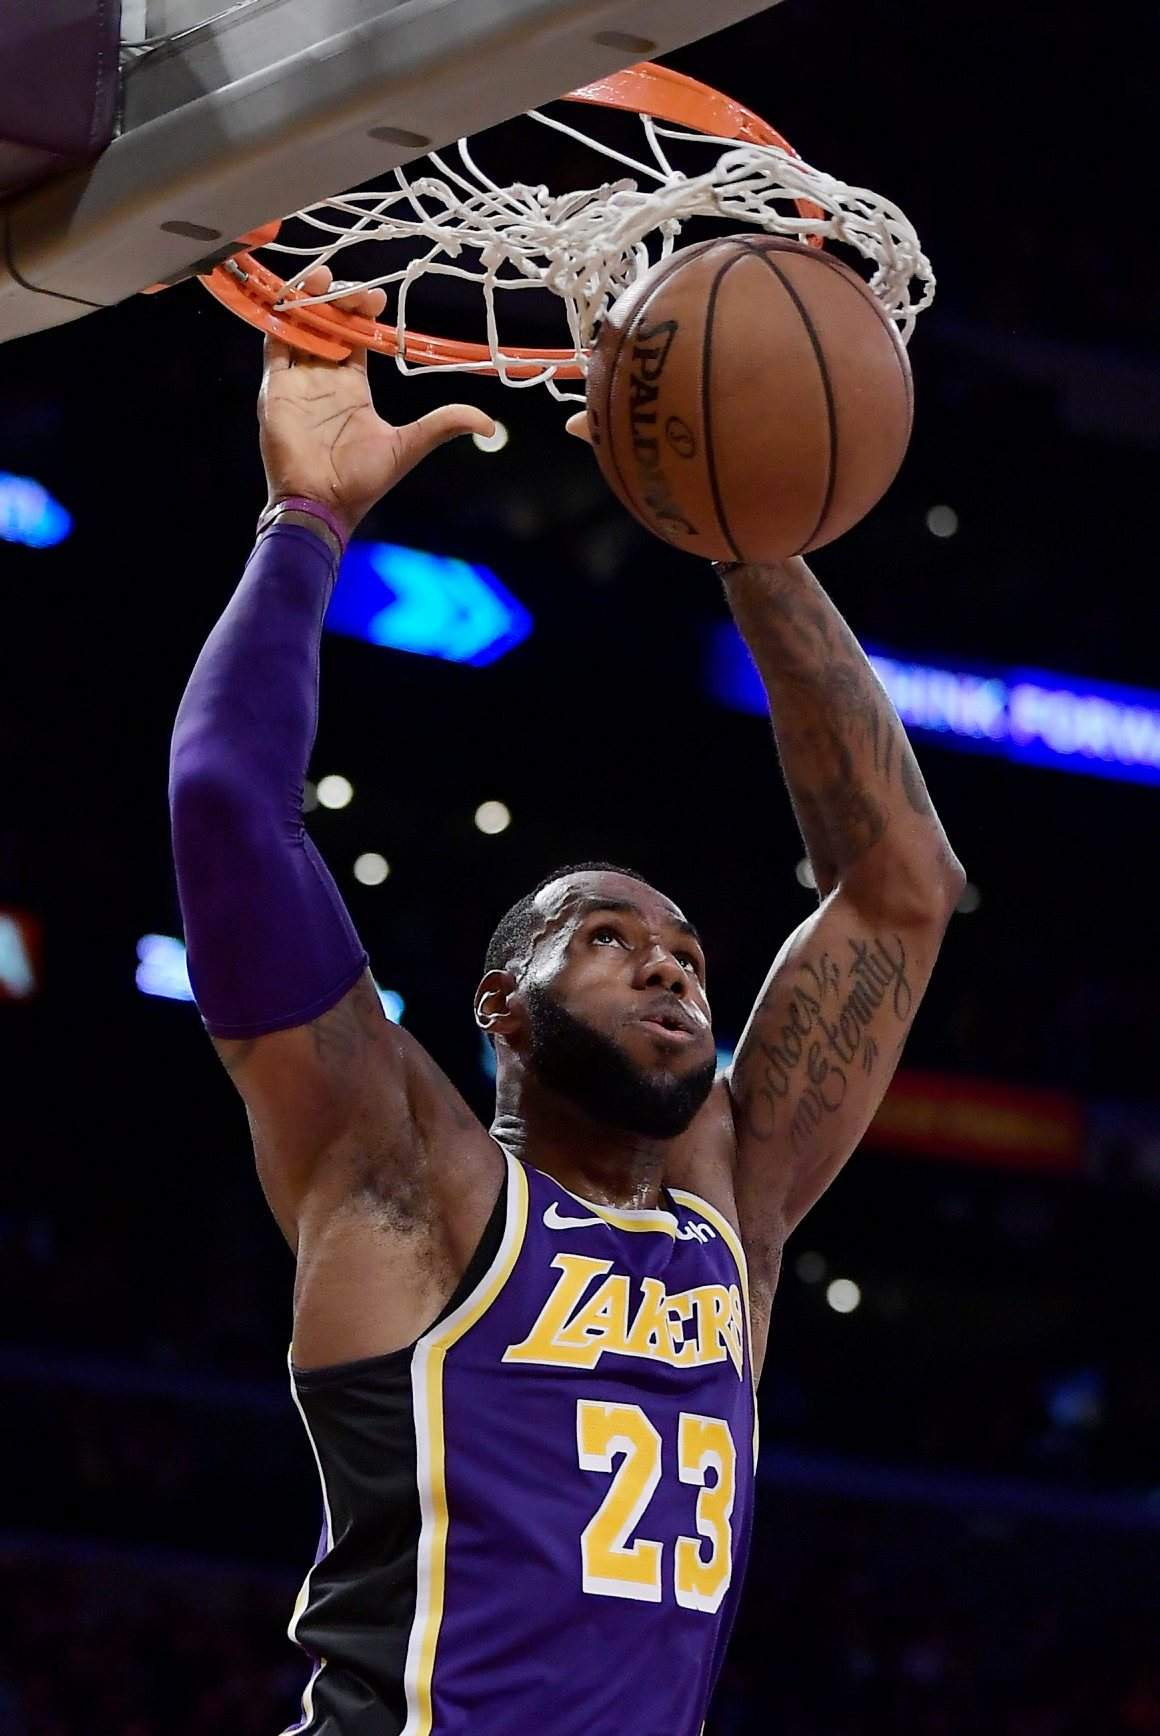 b506b3f5021 Los Angeles Lakers forward LeBron James dunks during the second half of  Wednesday s game against the Denver Nuggets in Los Angeles. The Nuggets won  115-99.